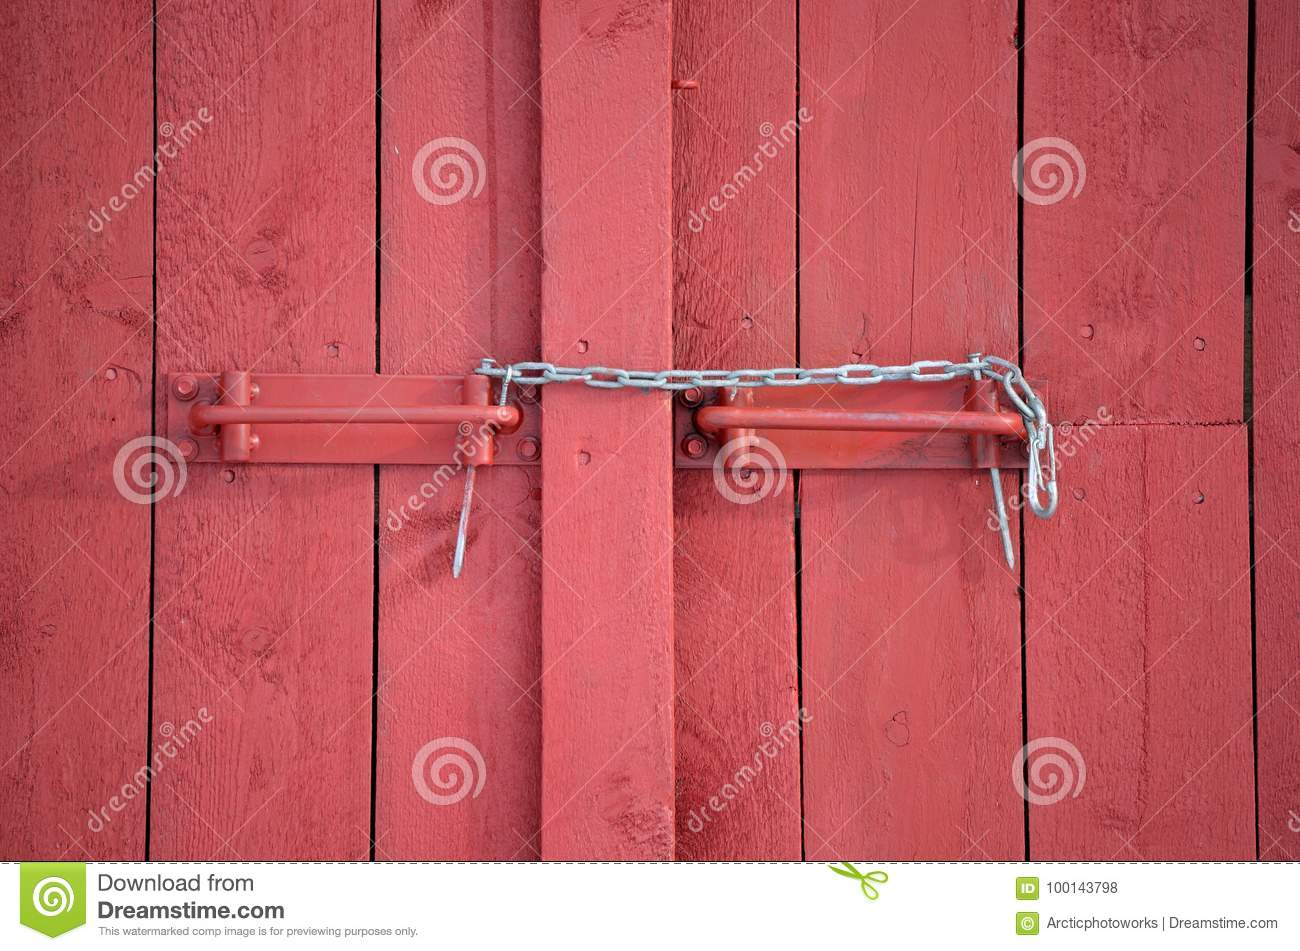 Royalty-Free Stock Photo. Download Makeshift Chain Lock ... & Makeshift Chain Lock On Red Barn Door Stock Photo - Image: 100143798 pezcame.com